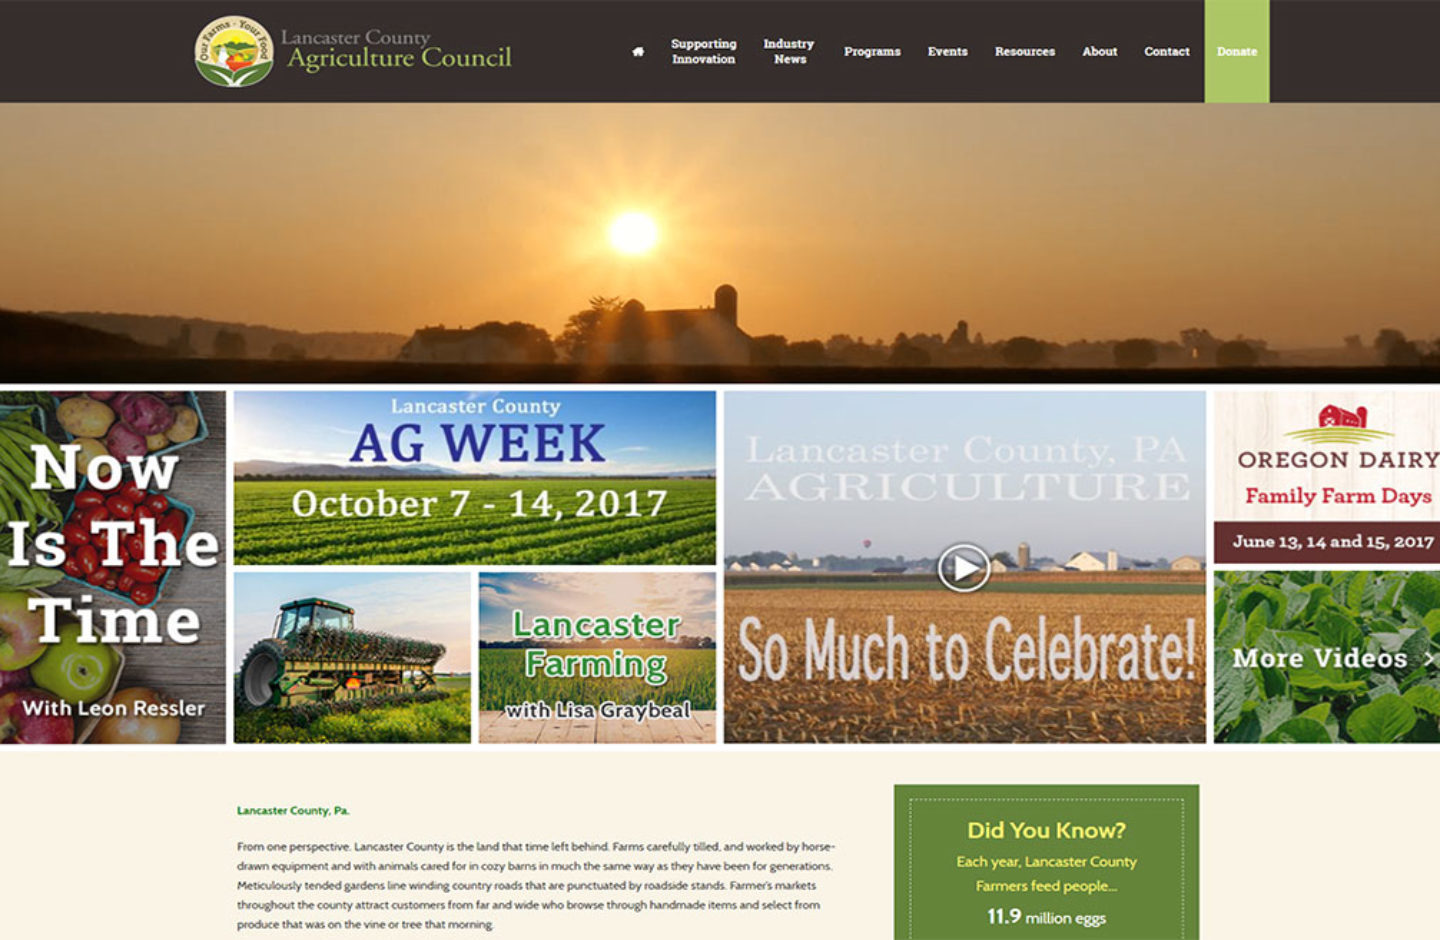 Lancaster County AG Council